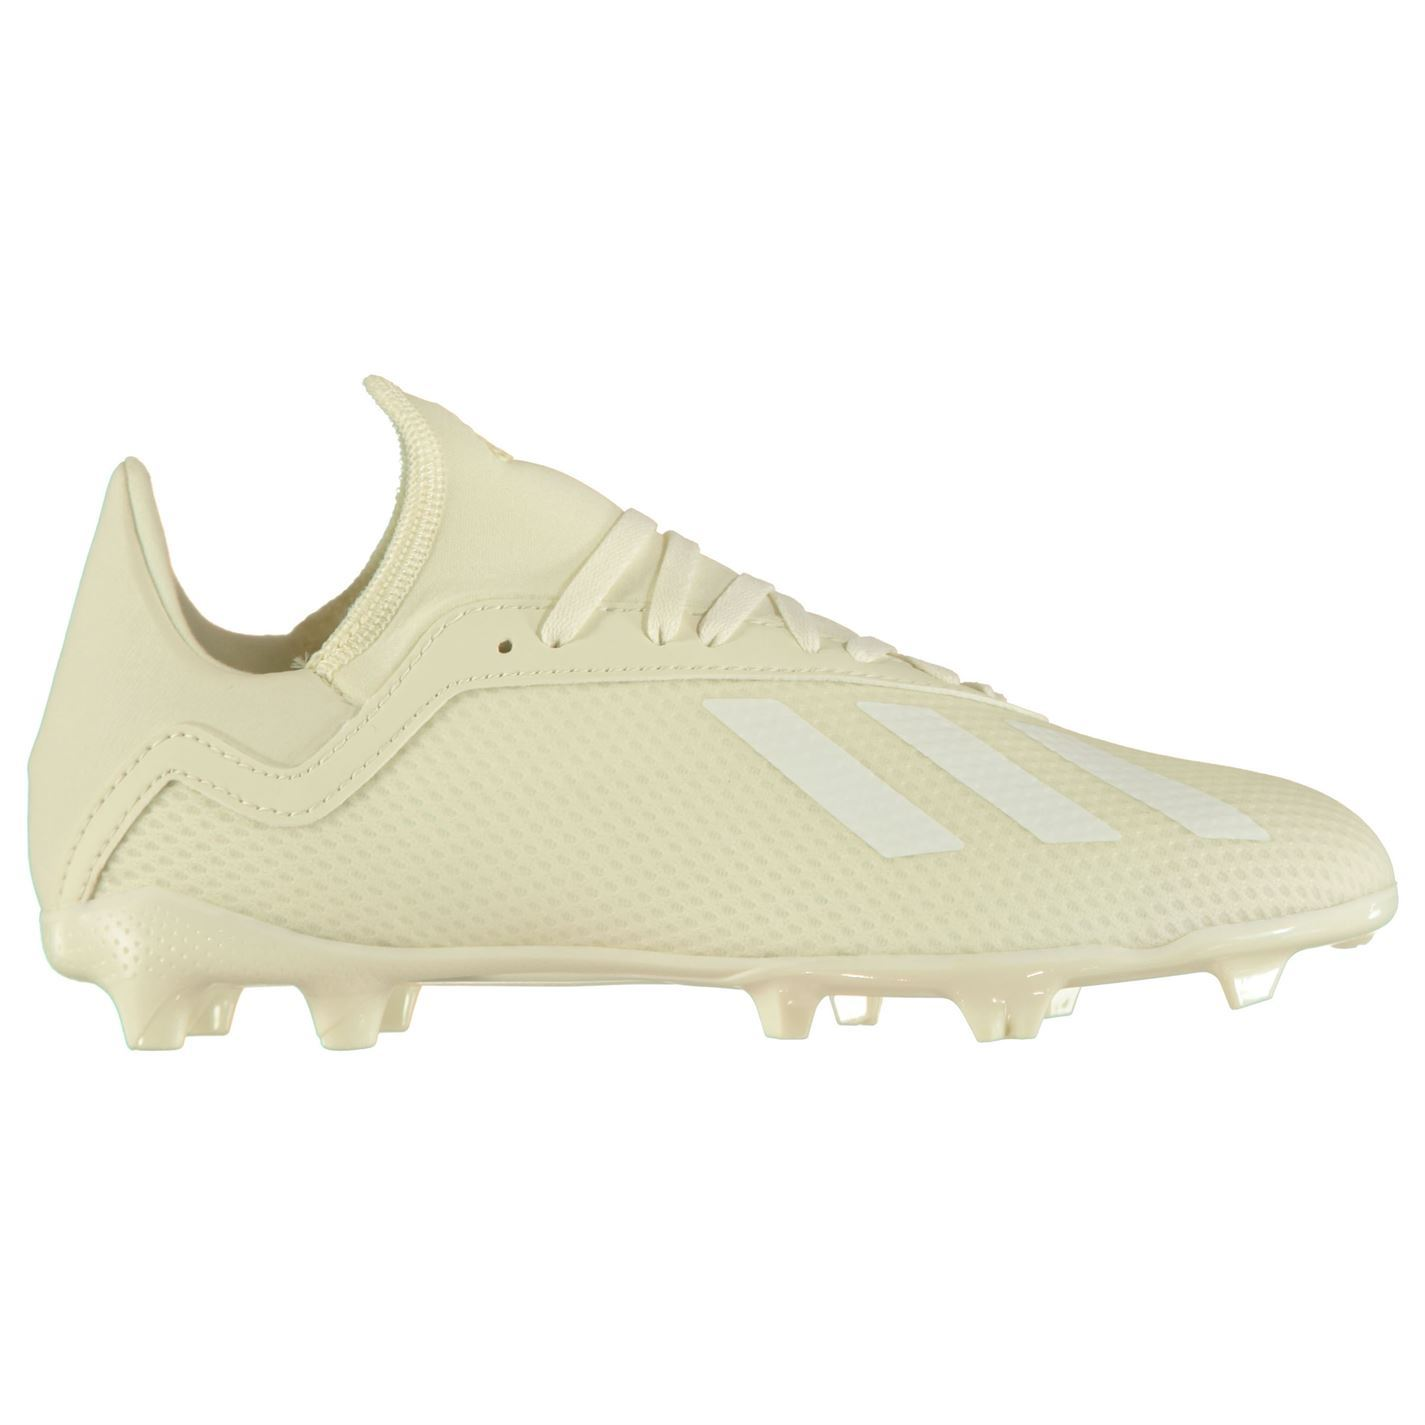 38a15c27c41 ... adidas X 18.3 FG Firm Ground Football Boots Juniors Soccer Shoes Cleats